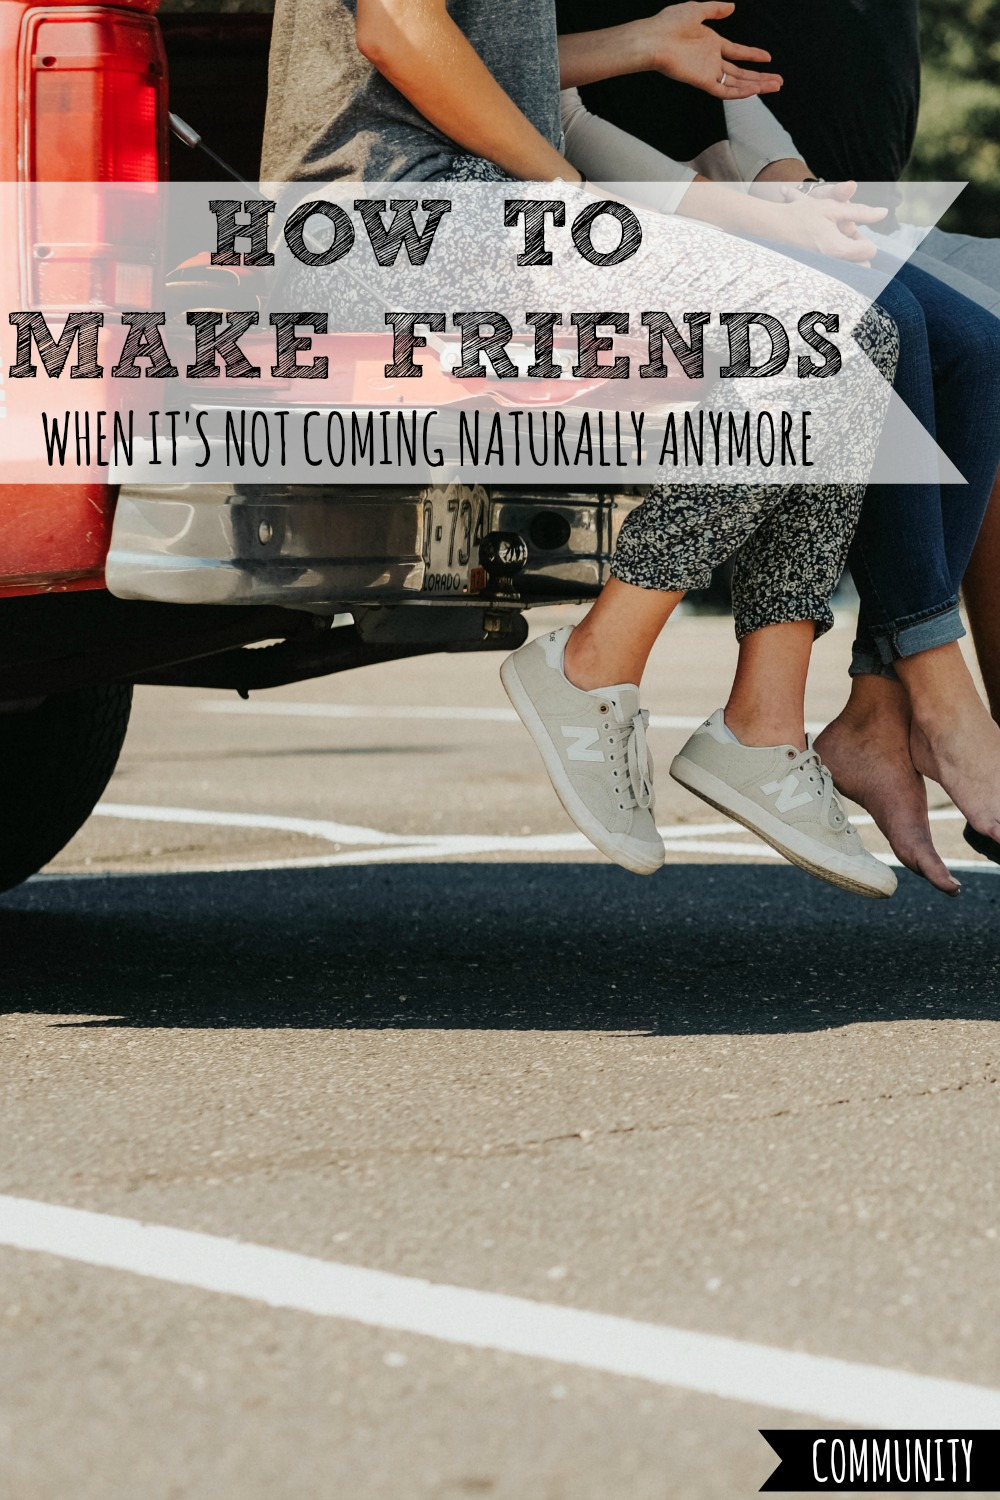 Ever struggle to make friends as an adult? I do! Here's your super practical guidebook to making new friends TODAY, even if it doesn't come naturally anymore! #make #making #new #friend #friends #friendship #friendships